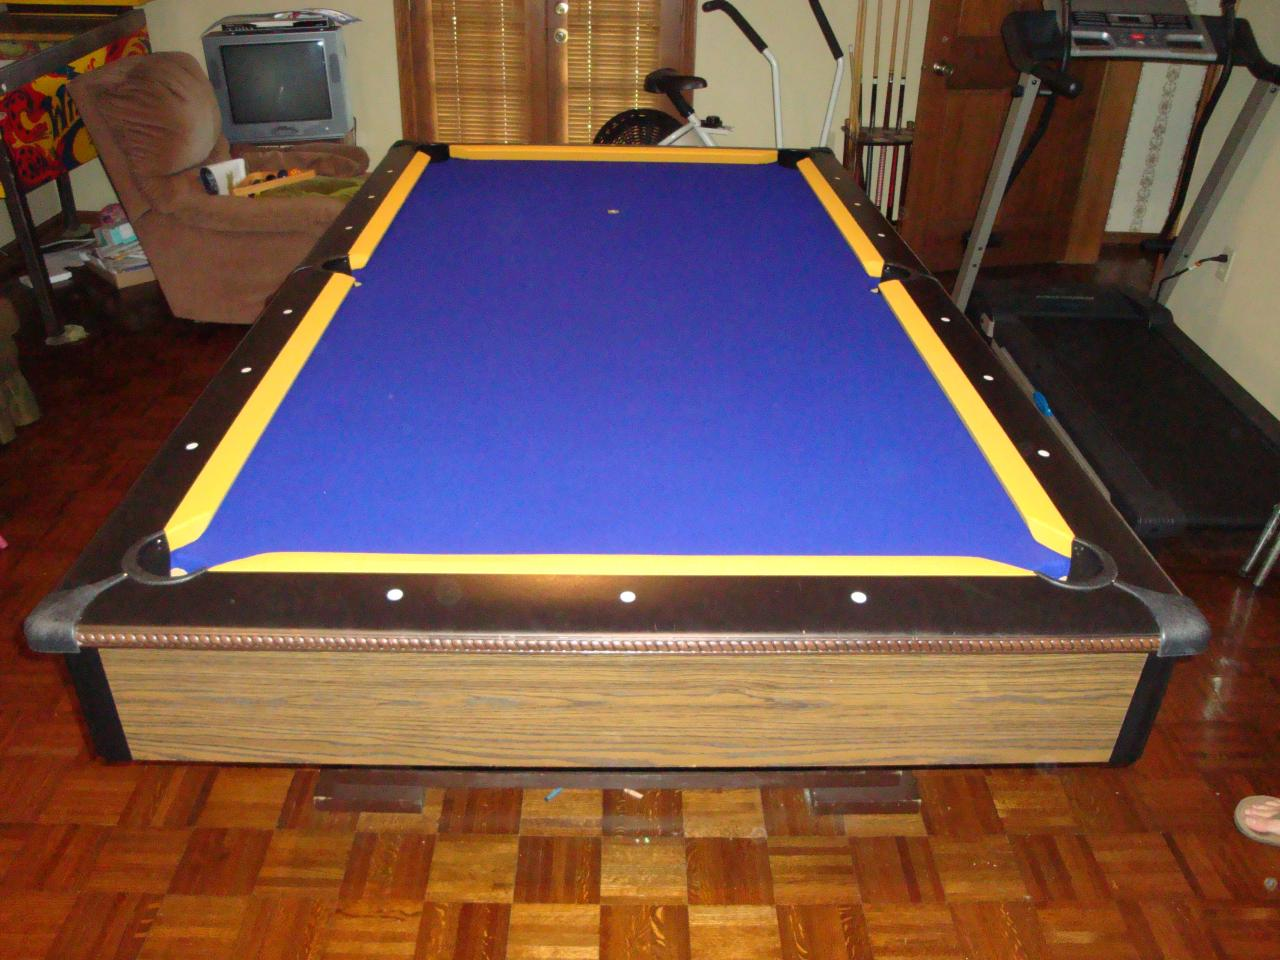 Olhausen Pool Table Prices unknown pool table - AFTER Championshisp gold on purple